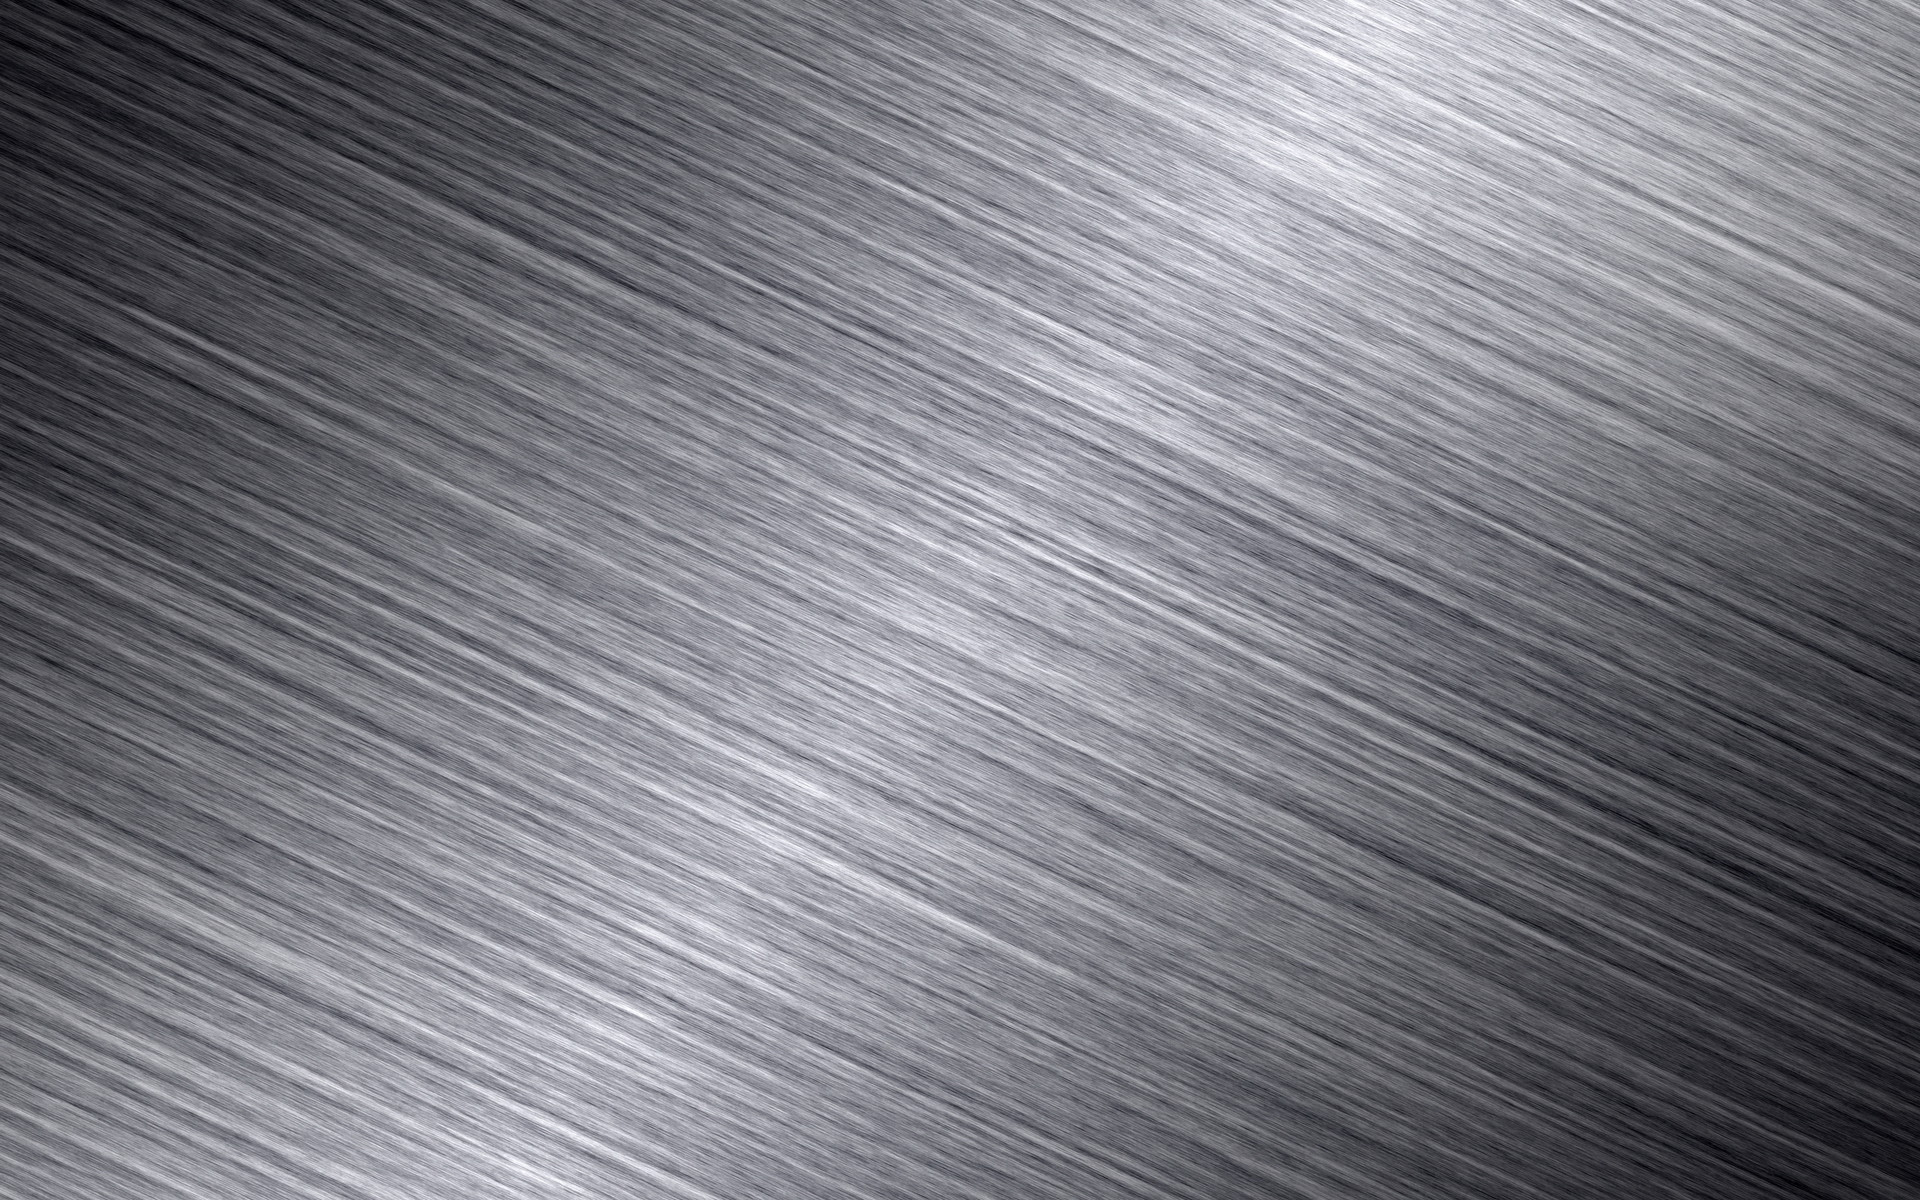 Grey Texture Background and Wallpaper (8)